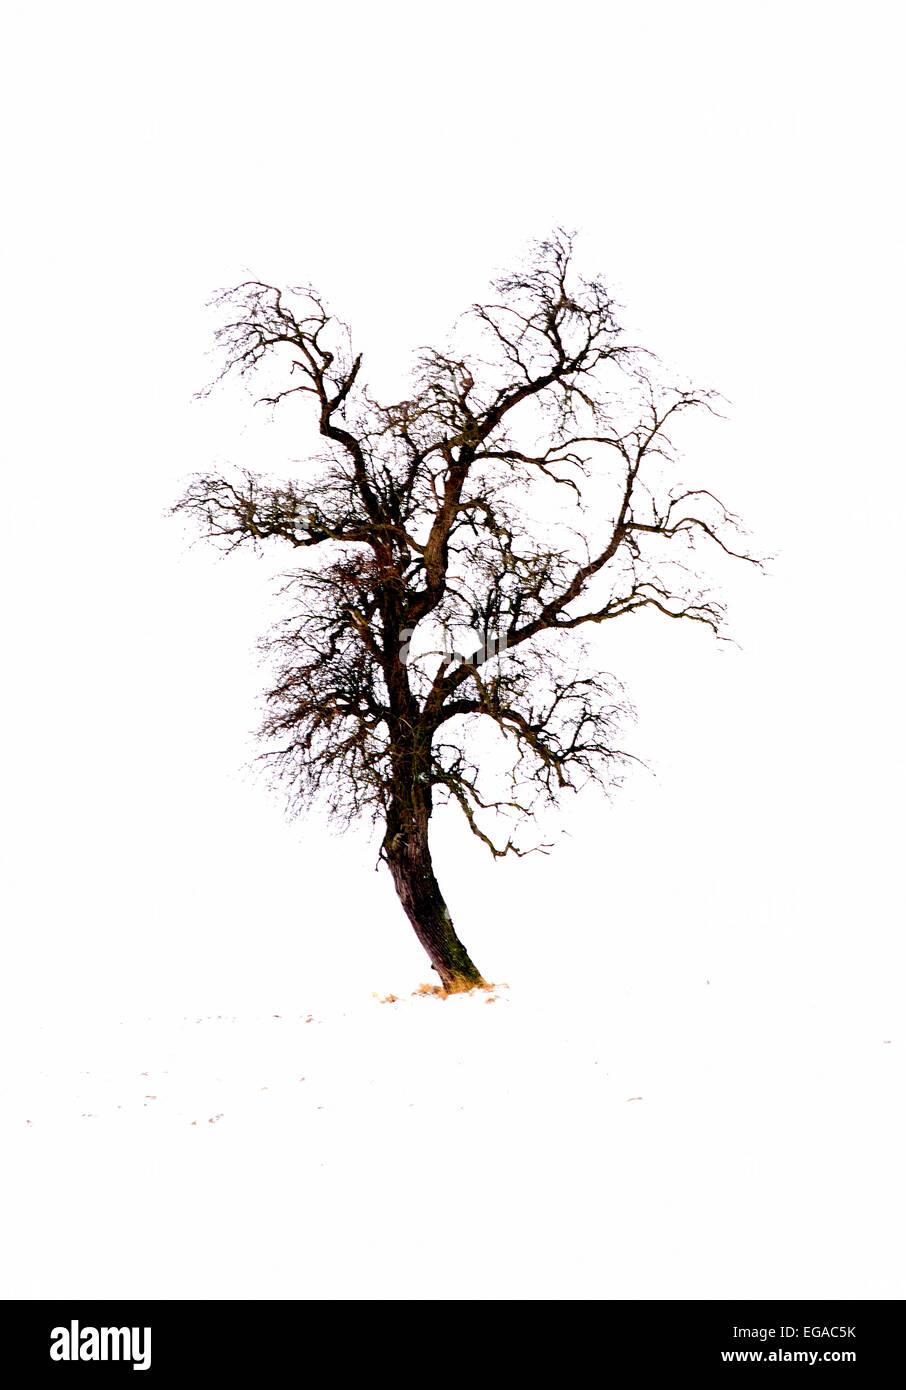 Single tree silhouetted against cloudy winter sky, Mazovia Region, Poland - Stock Image